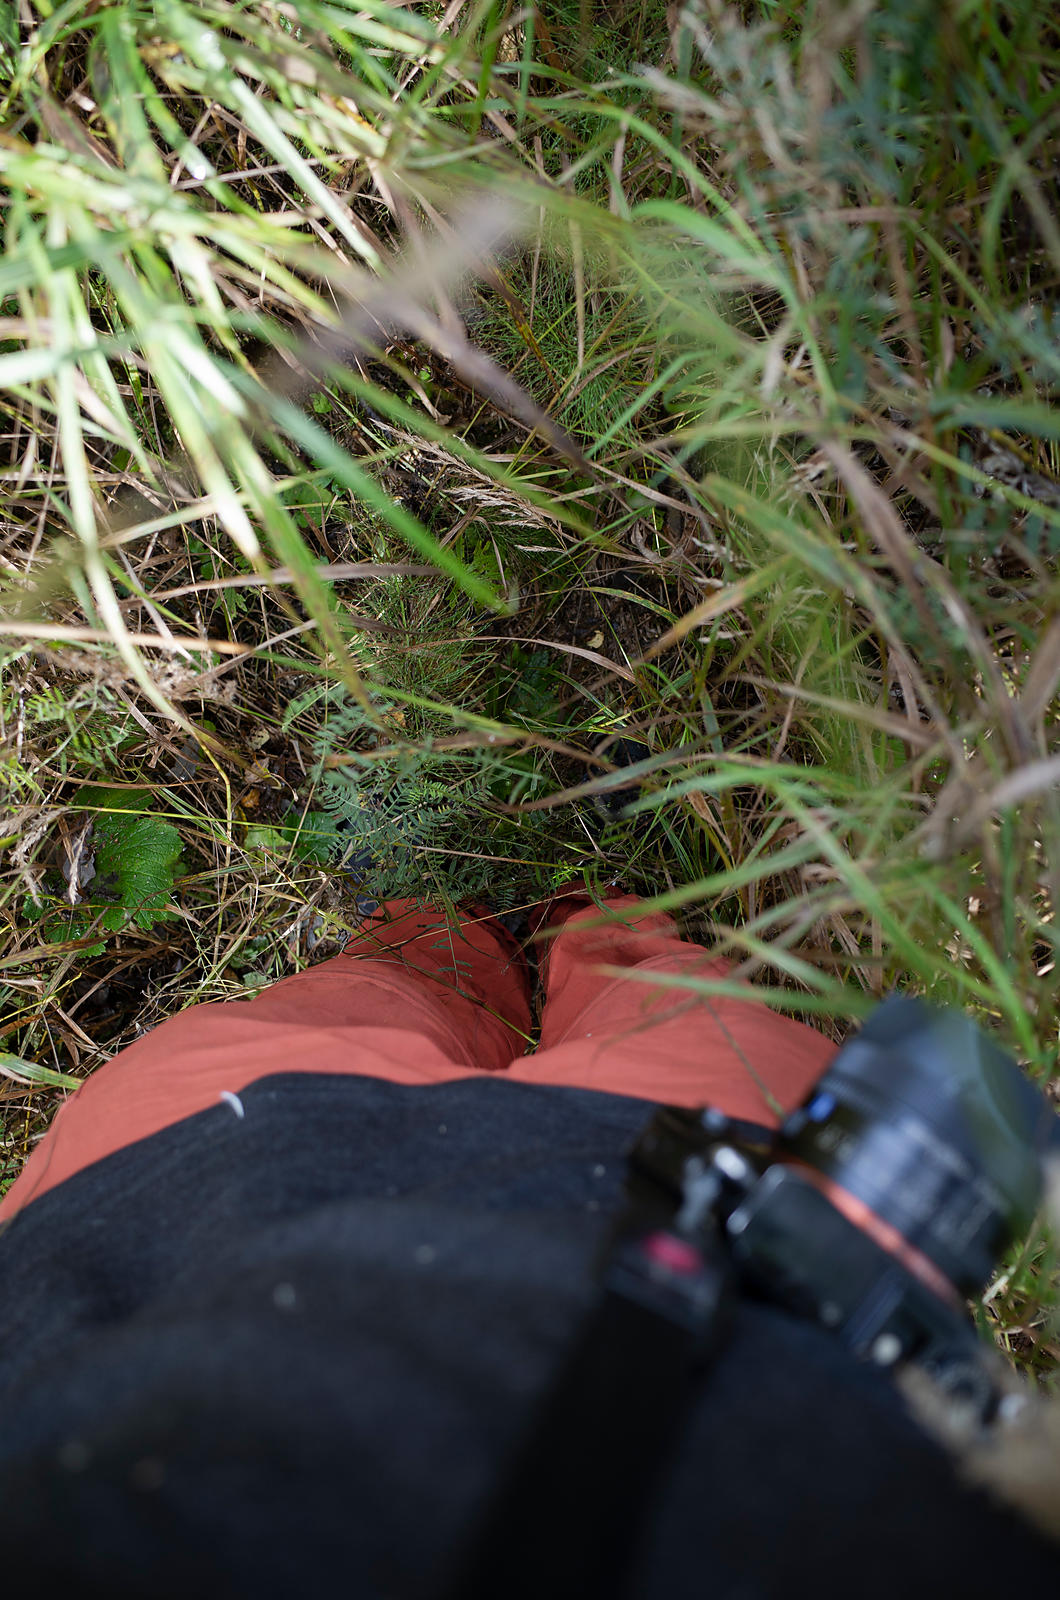 At times the trail went through grass higher than me. Without map one wouldn't know of any path.